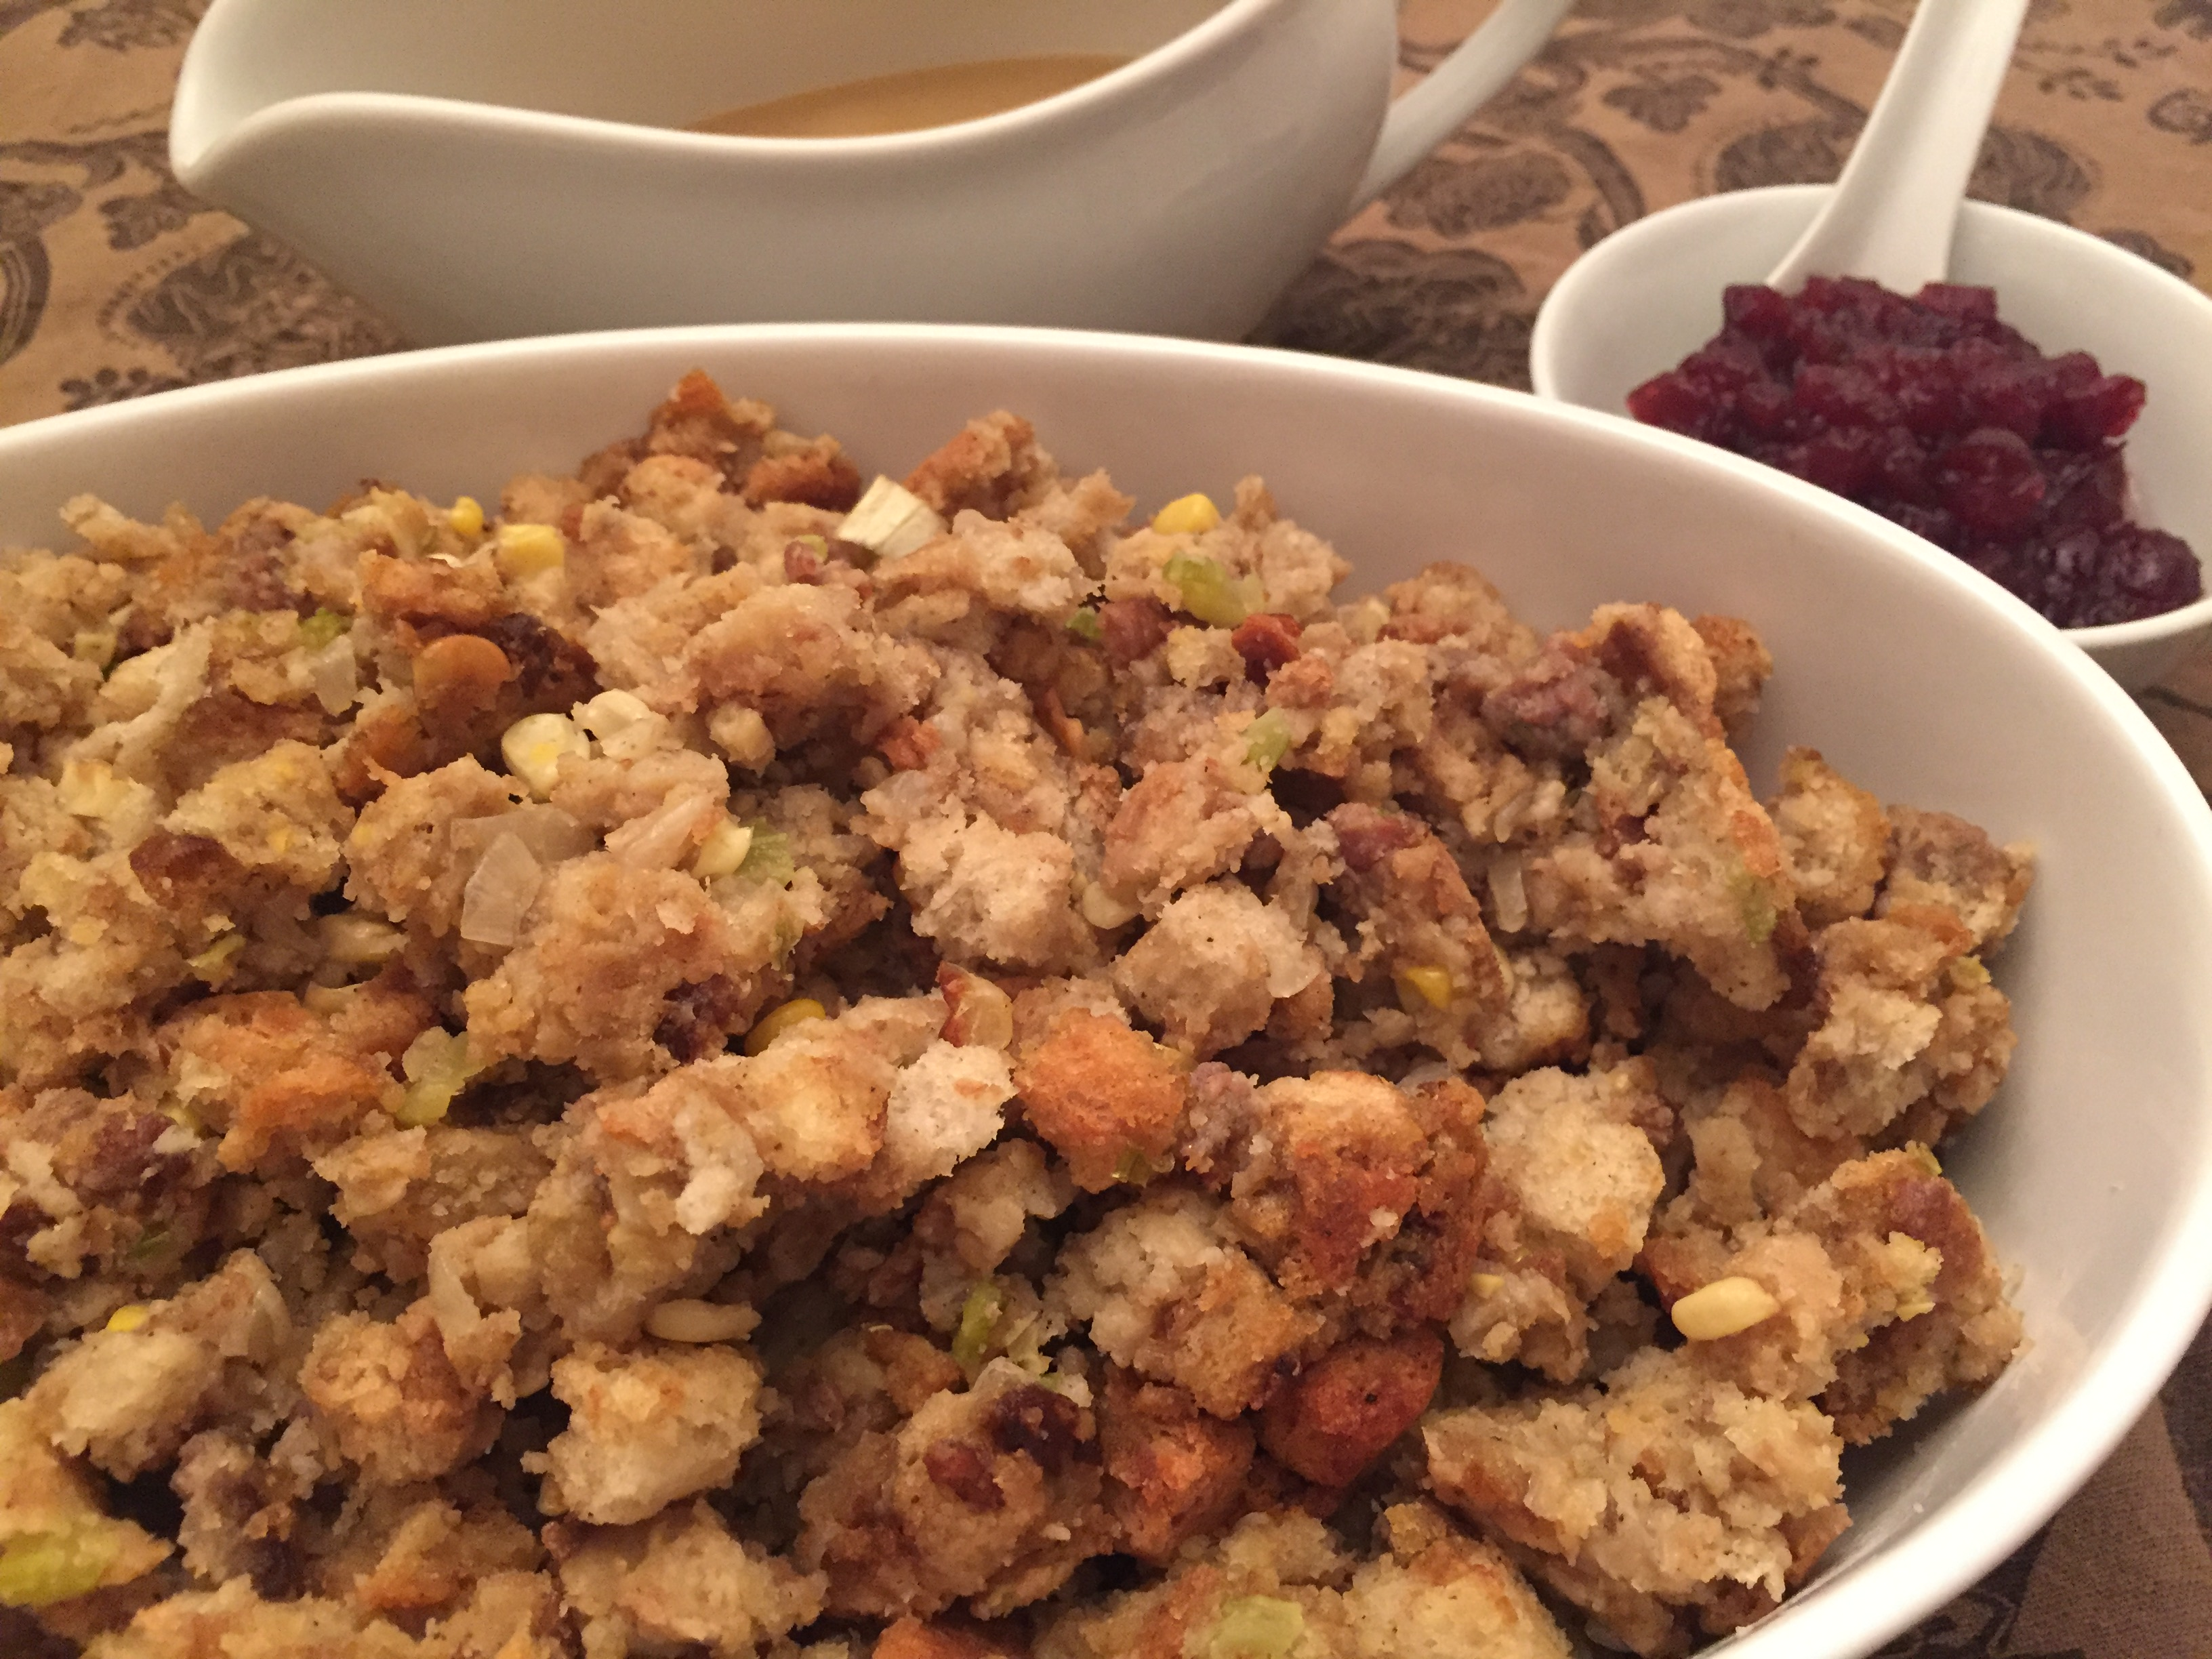 Italian sausage is a nice addition to a traditional stuffing recipe